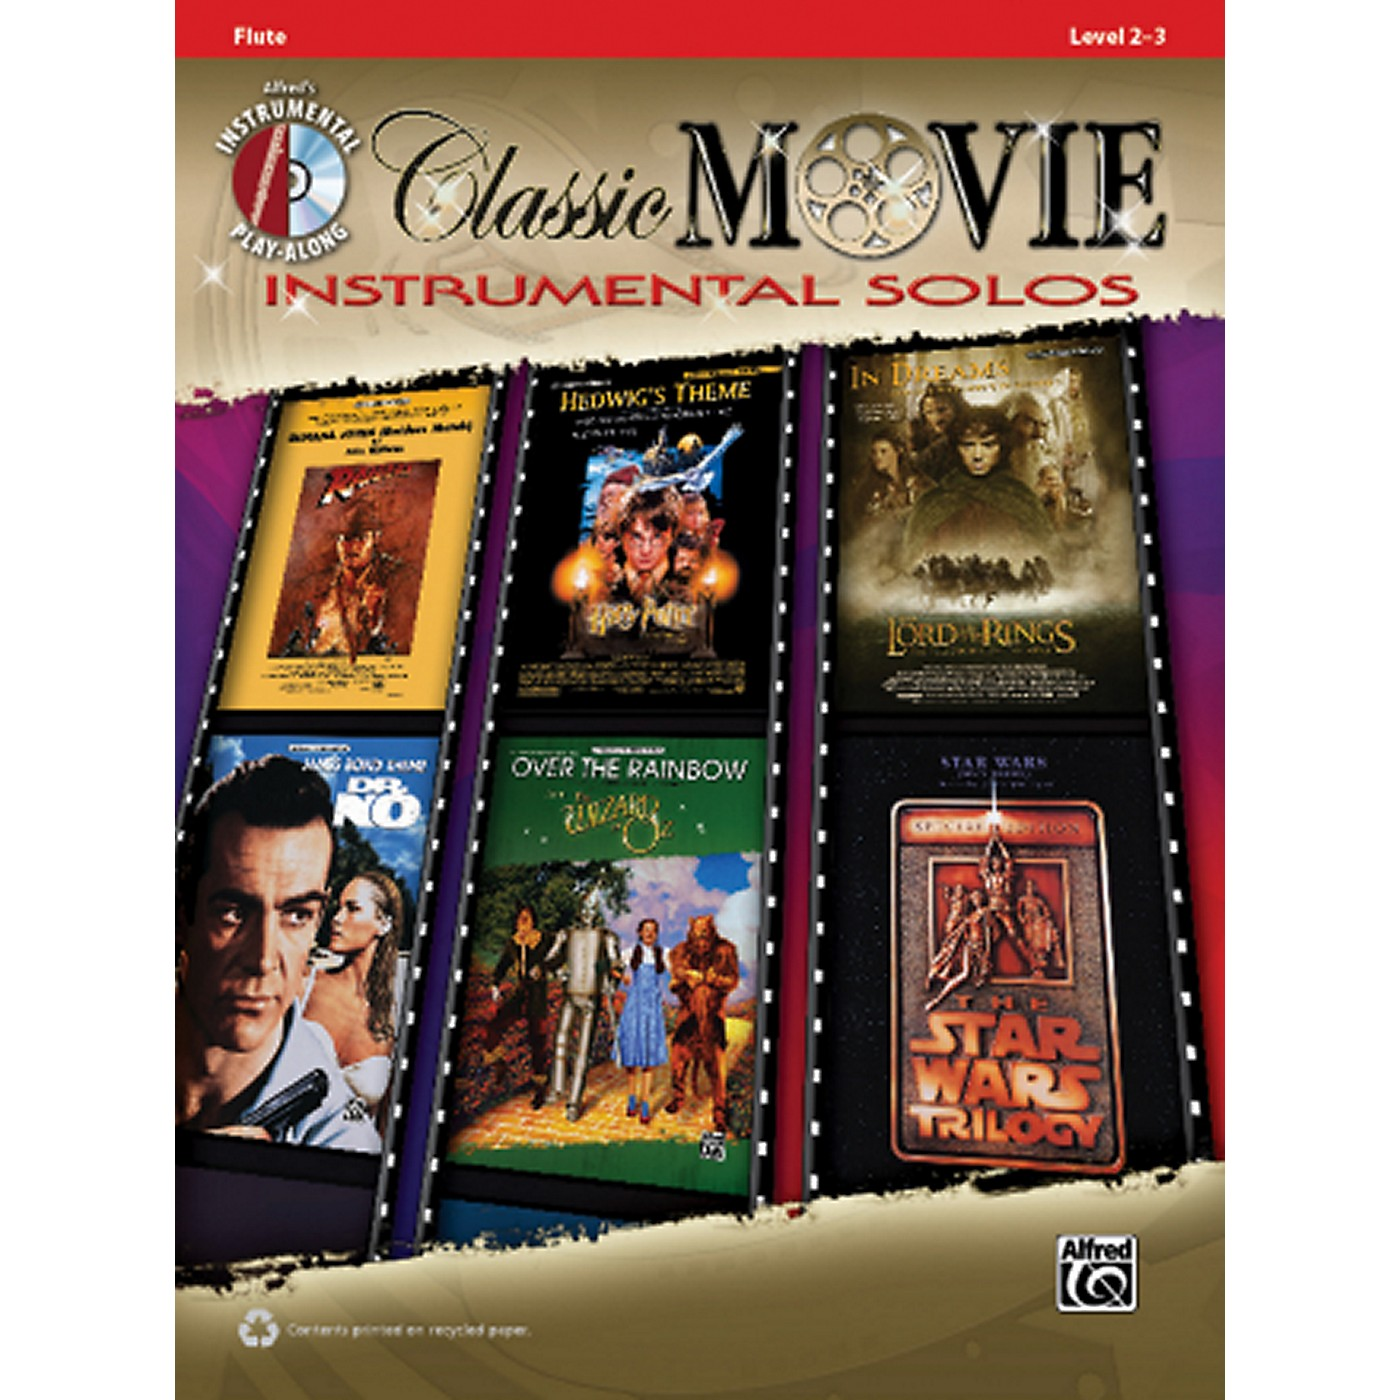 Alfred Classic Movie Instrumental Solos Flute Play Along Book/CD thumbnail